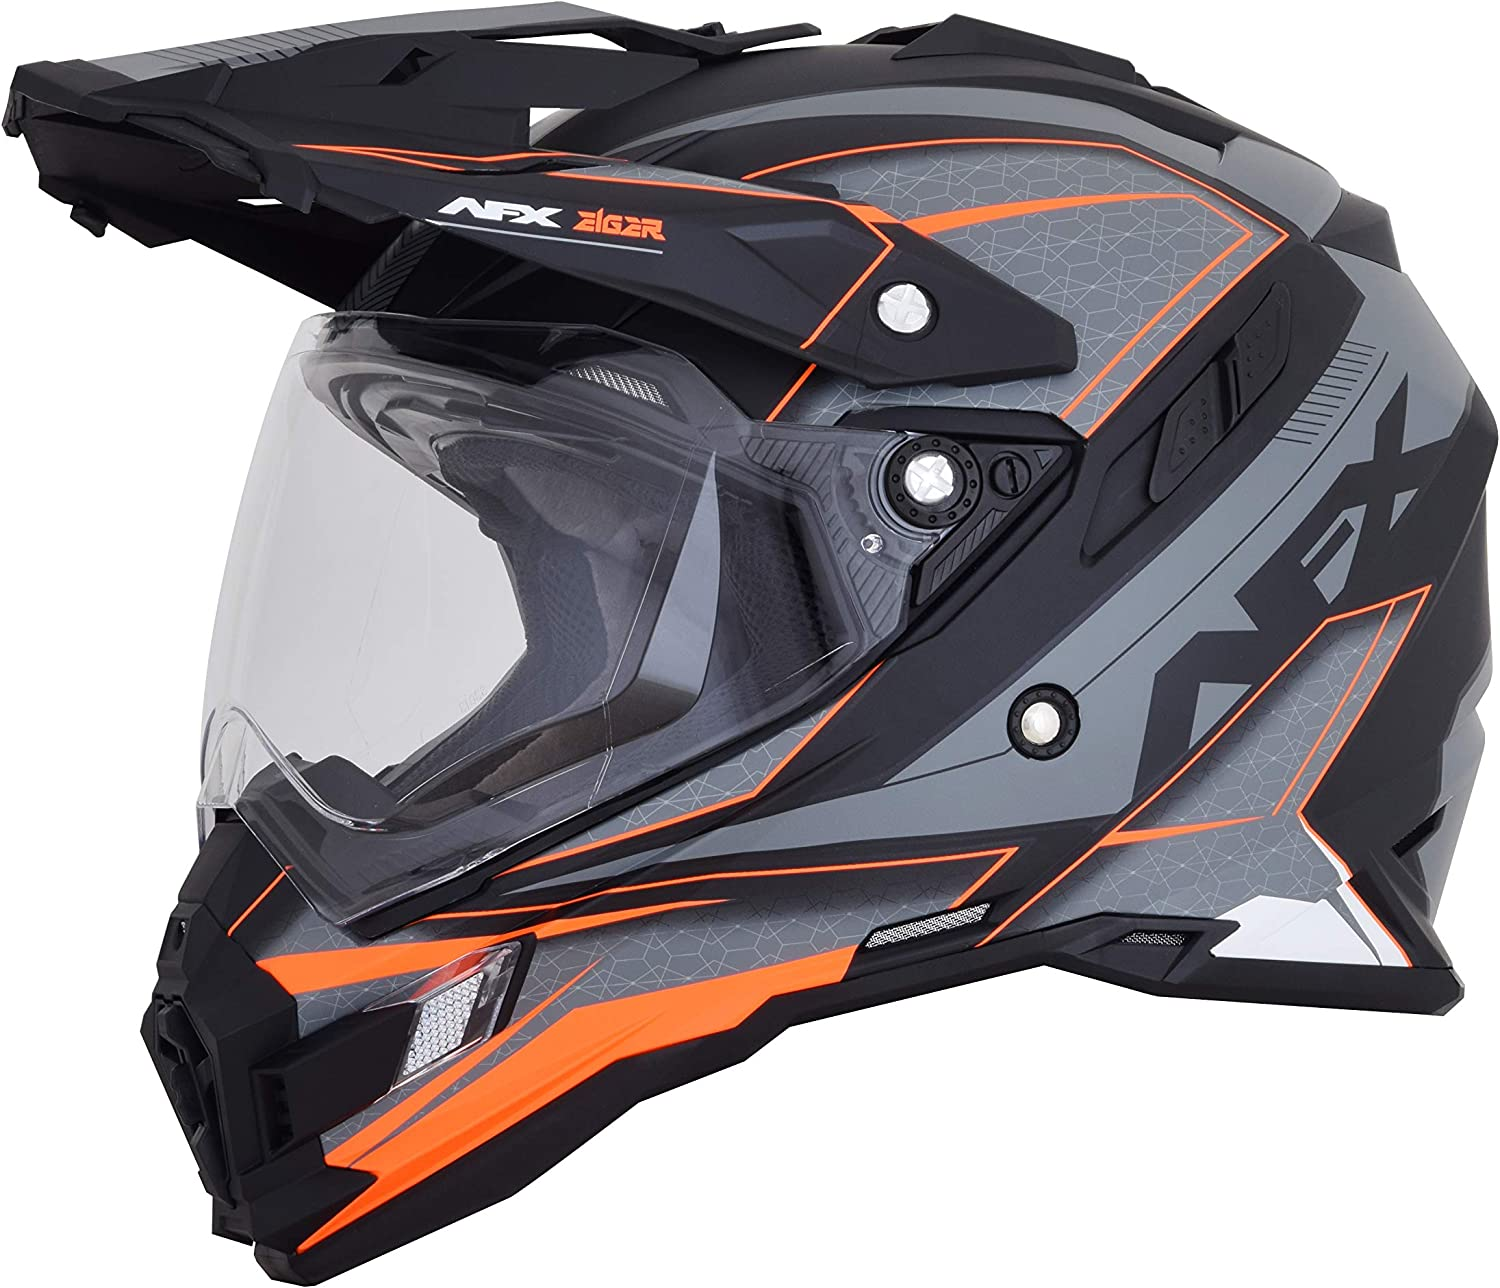 Best Adventure Helmet 2021- Best Buyer Guide and Reviews